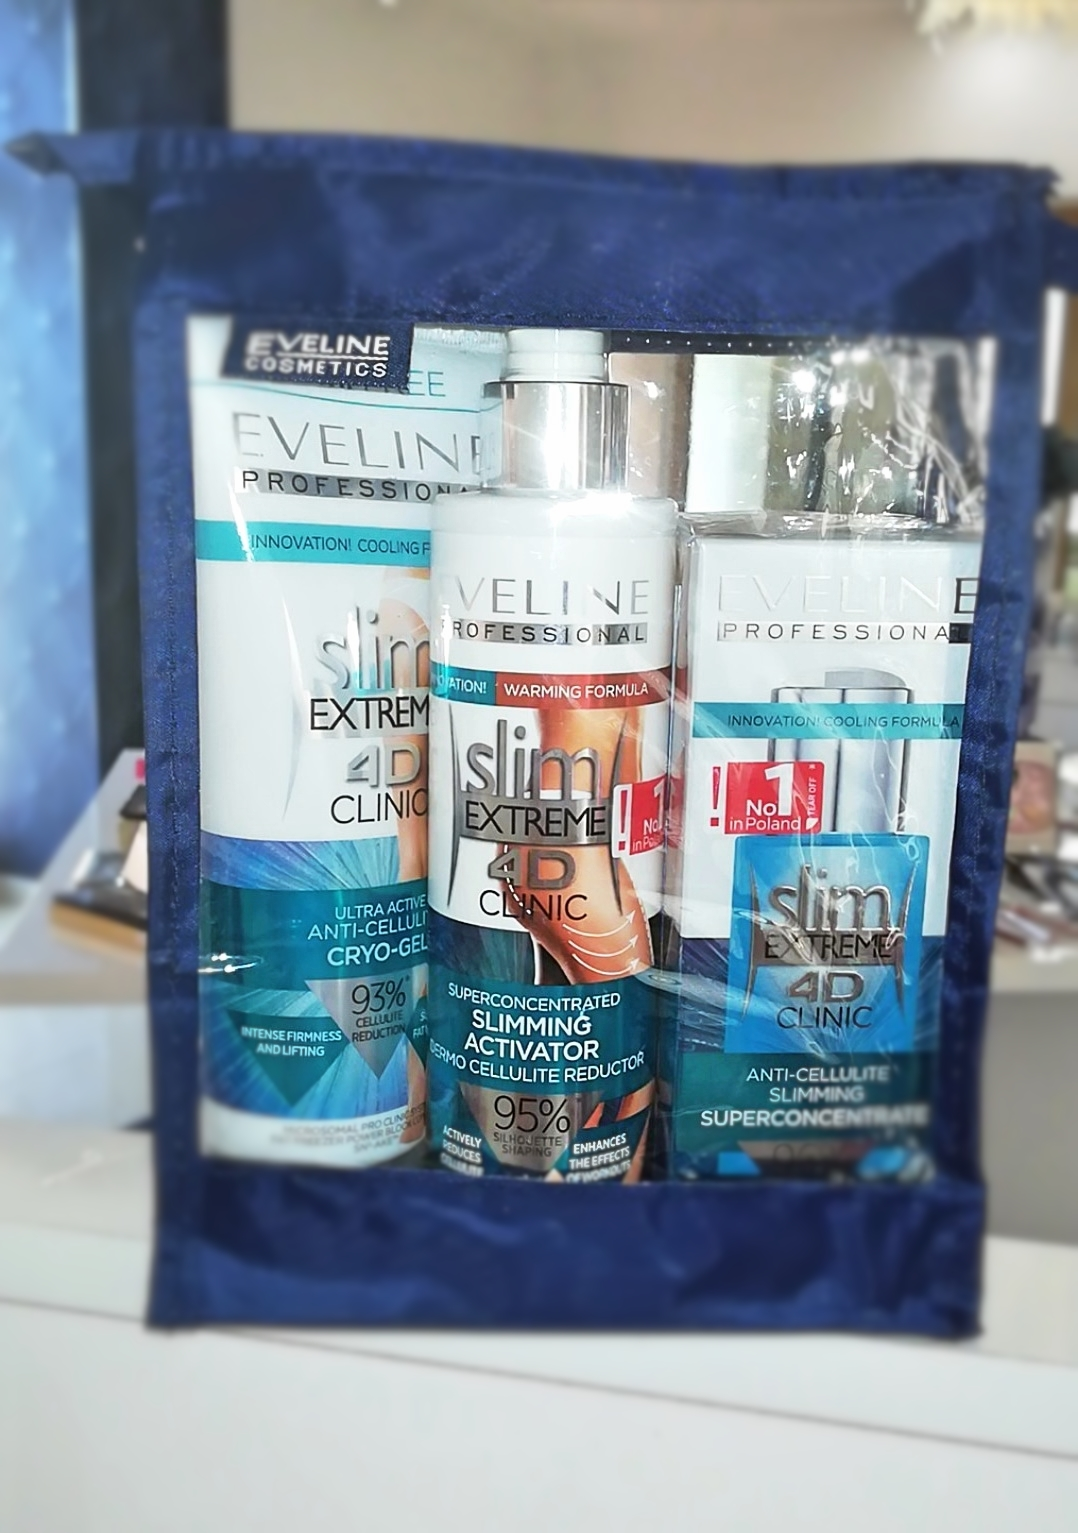 EVELINE slim EXTREME 4D CLINIC SET